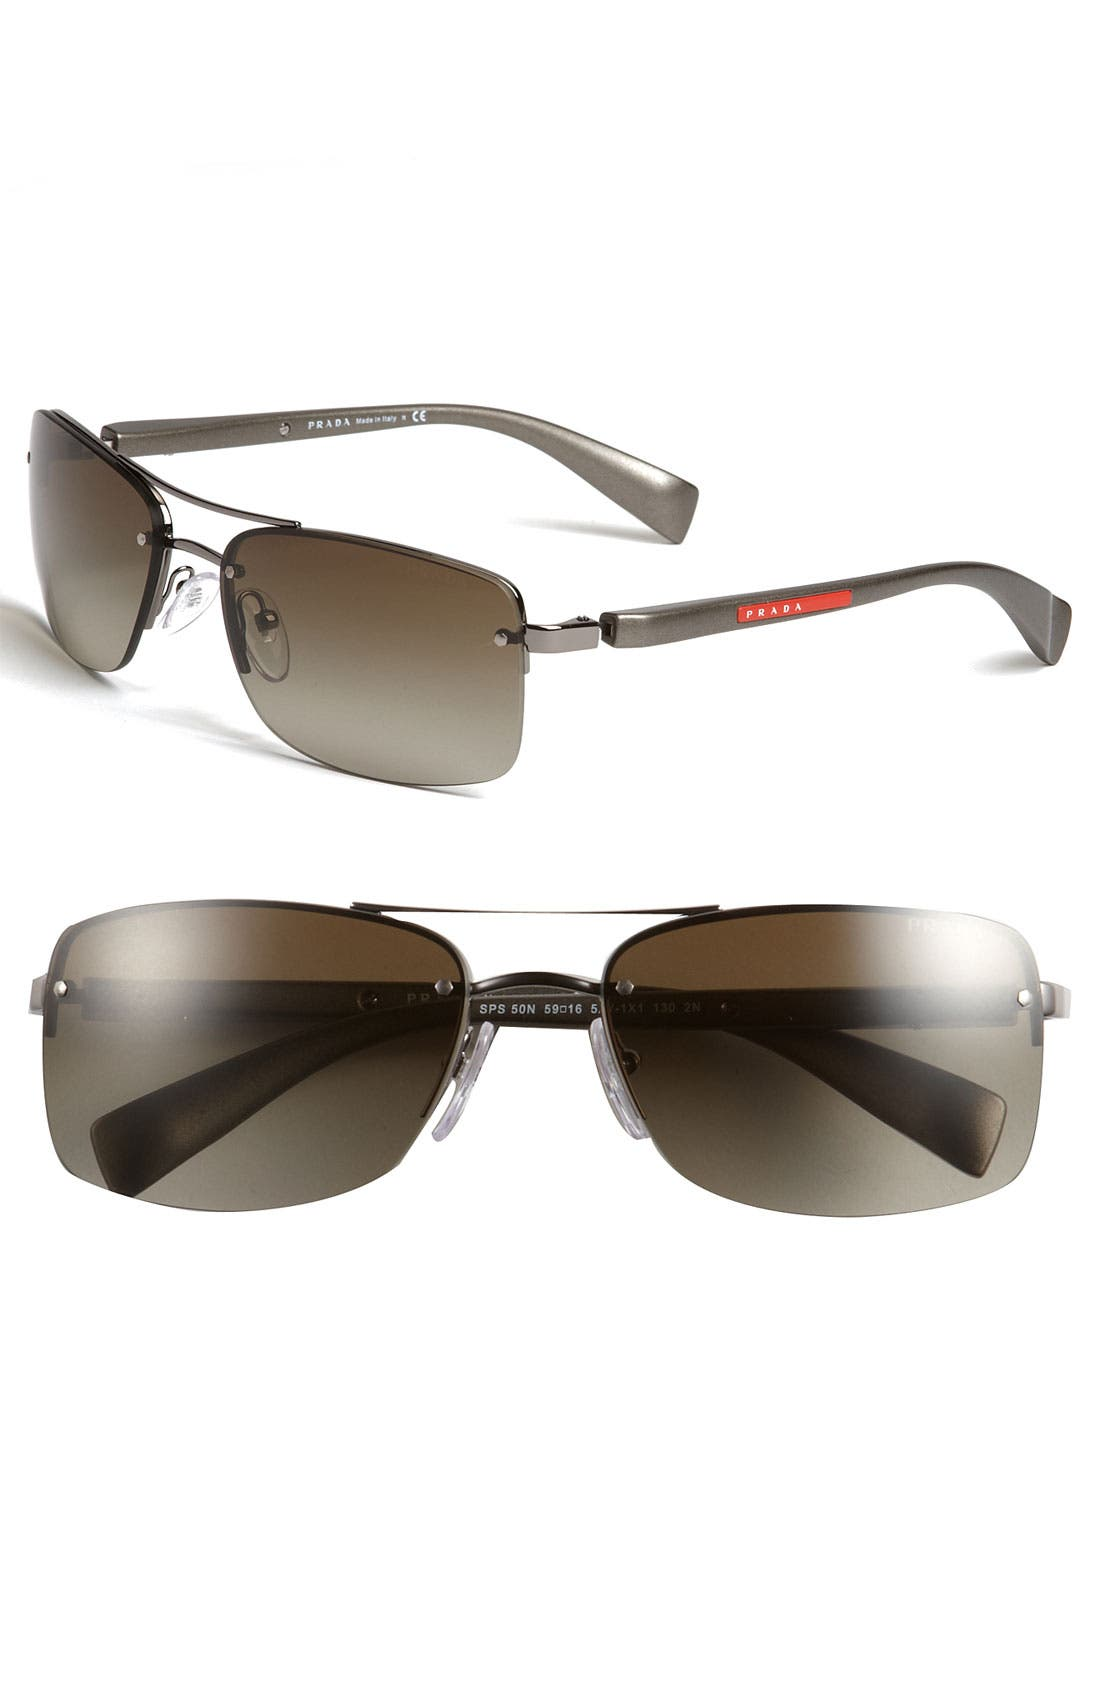 Main Image - Prada 59mm Rectangle Sunglasses